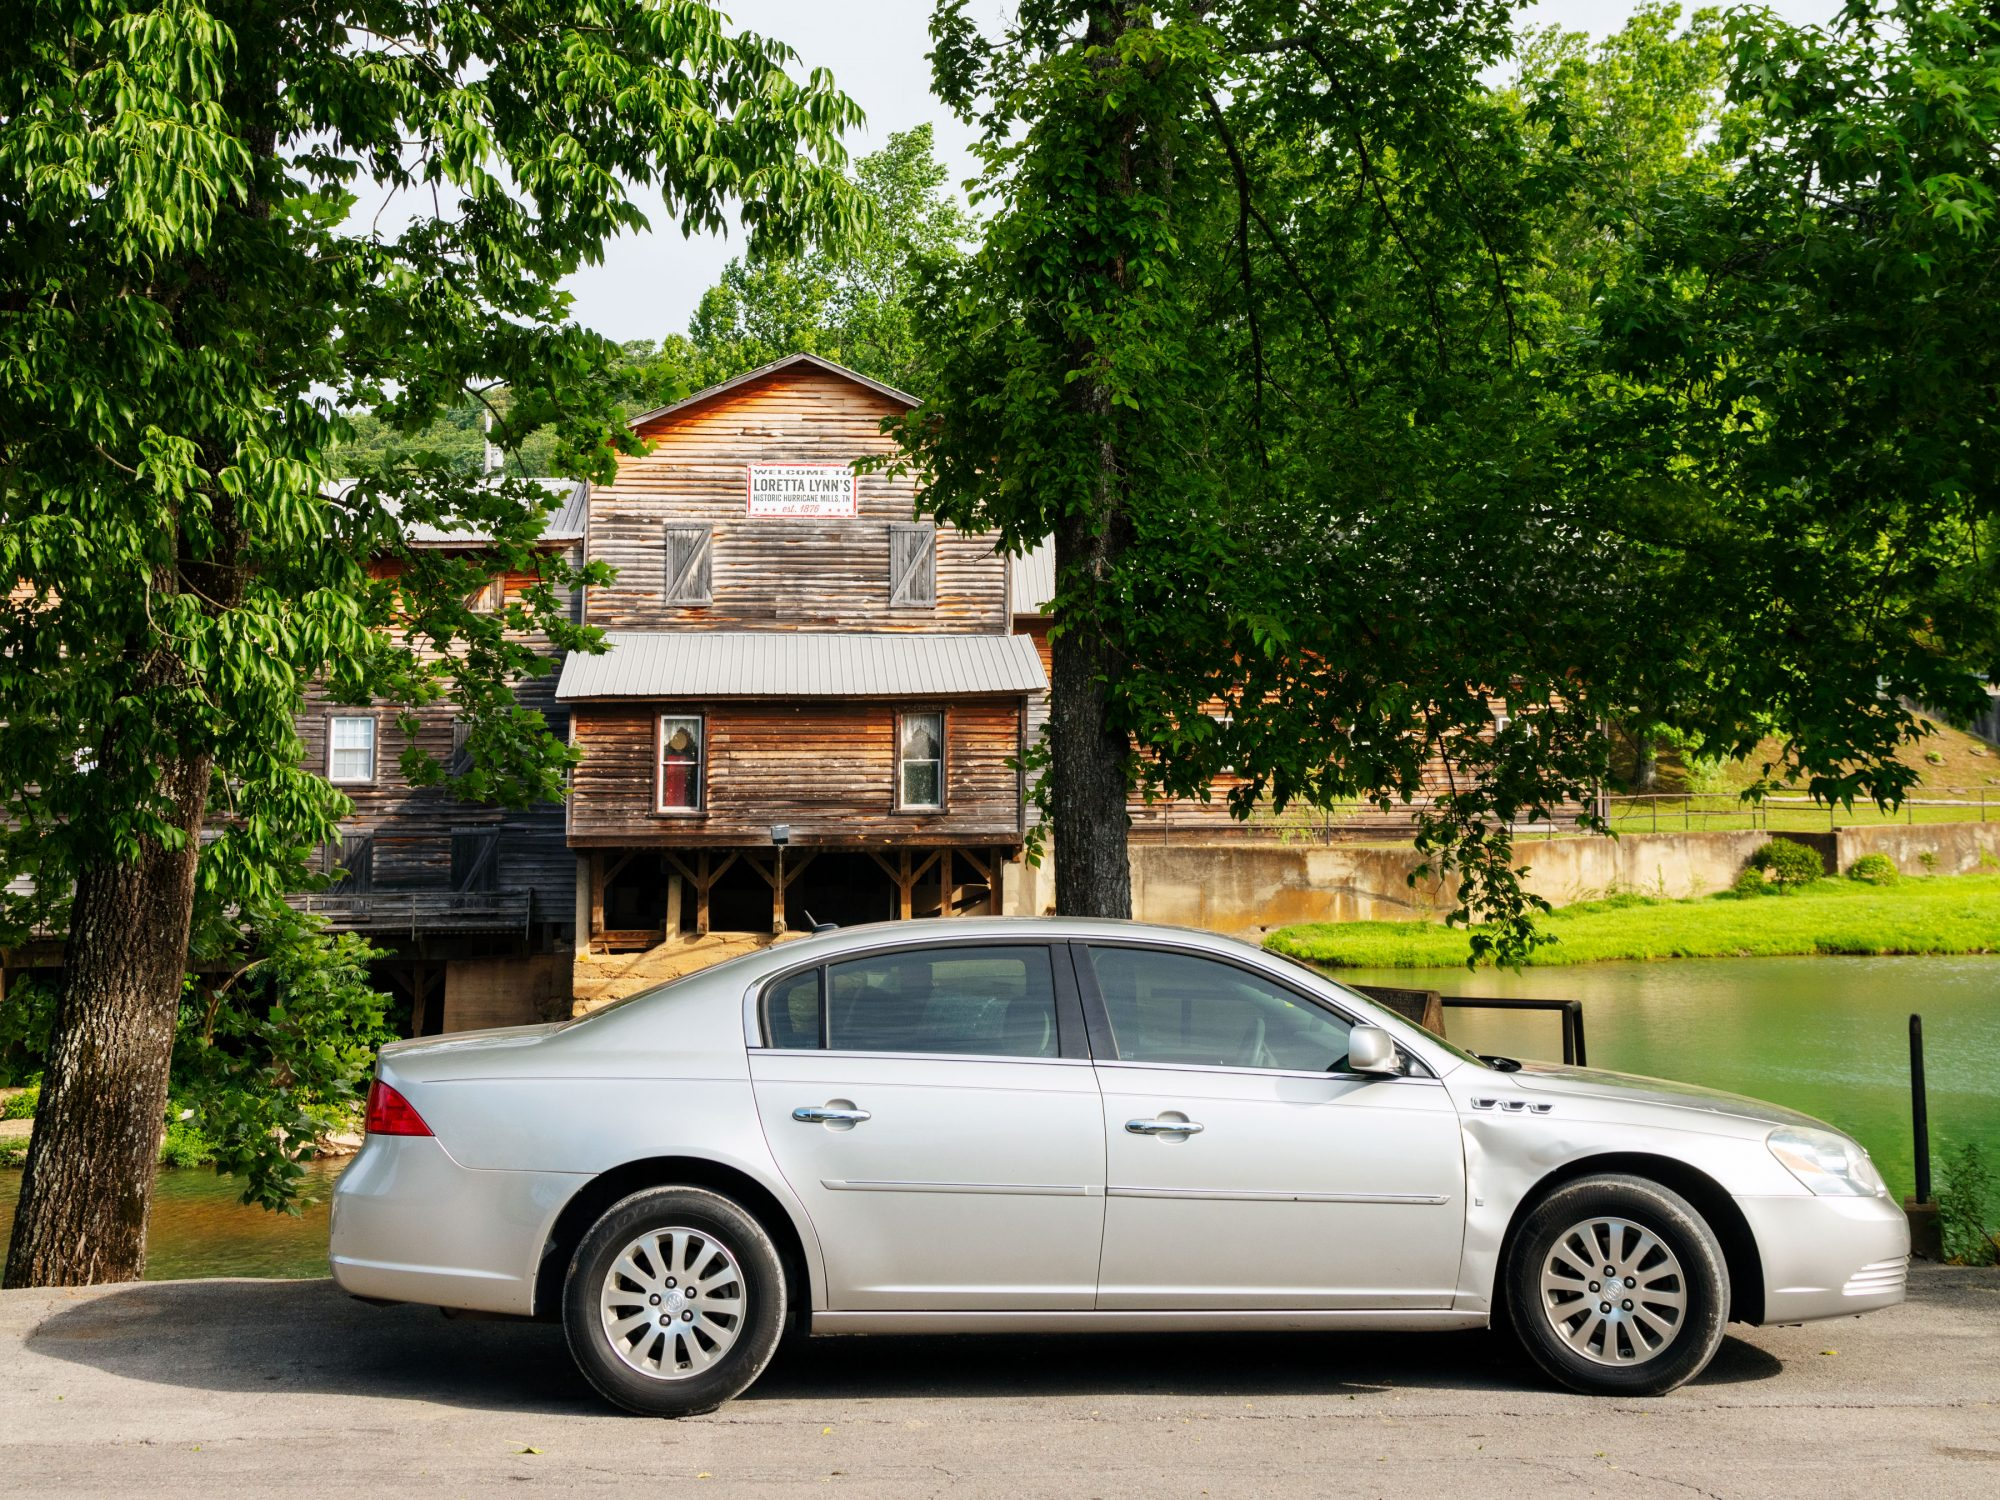 Caleb Johnson's Buick Lucerne Left to Him By His Grandmother